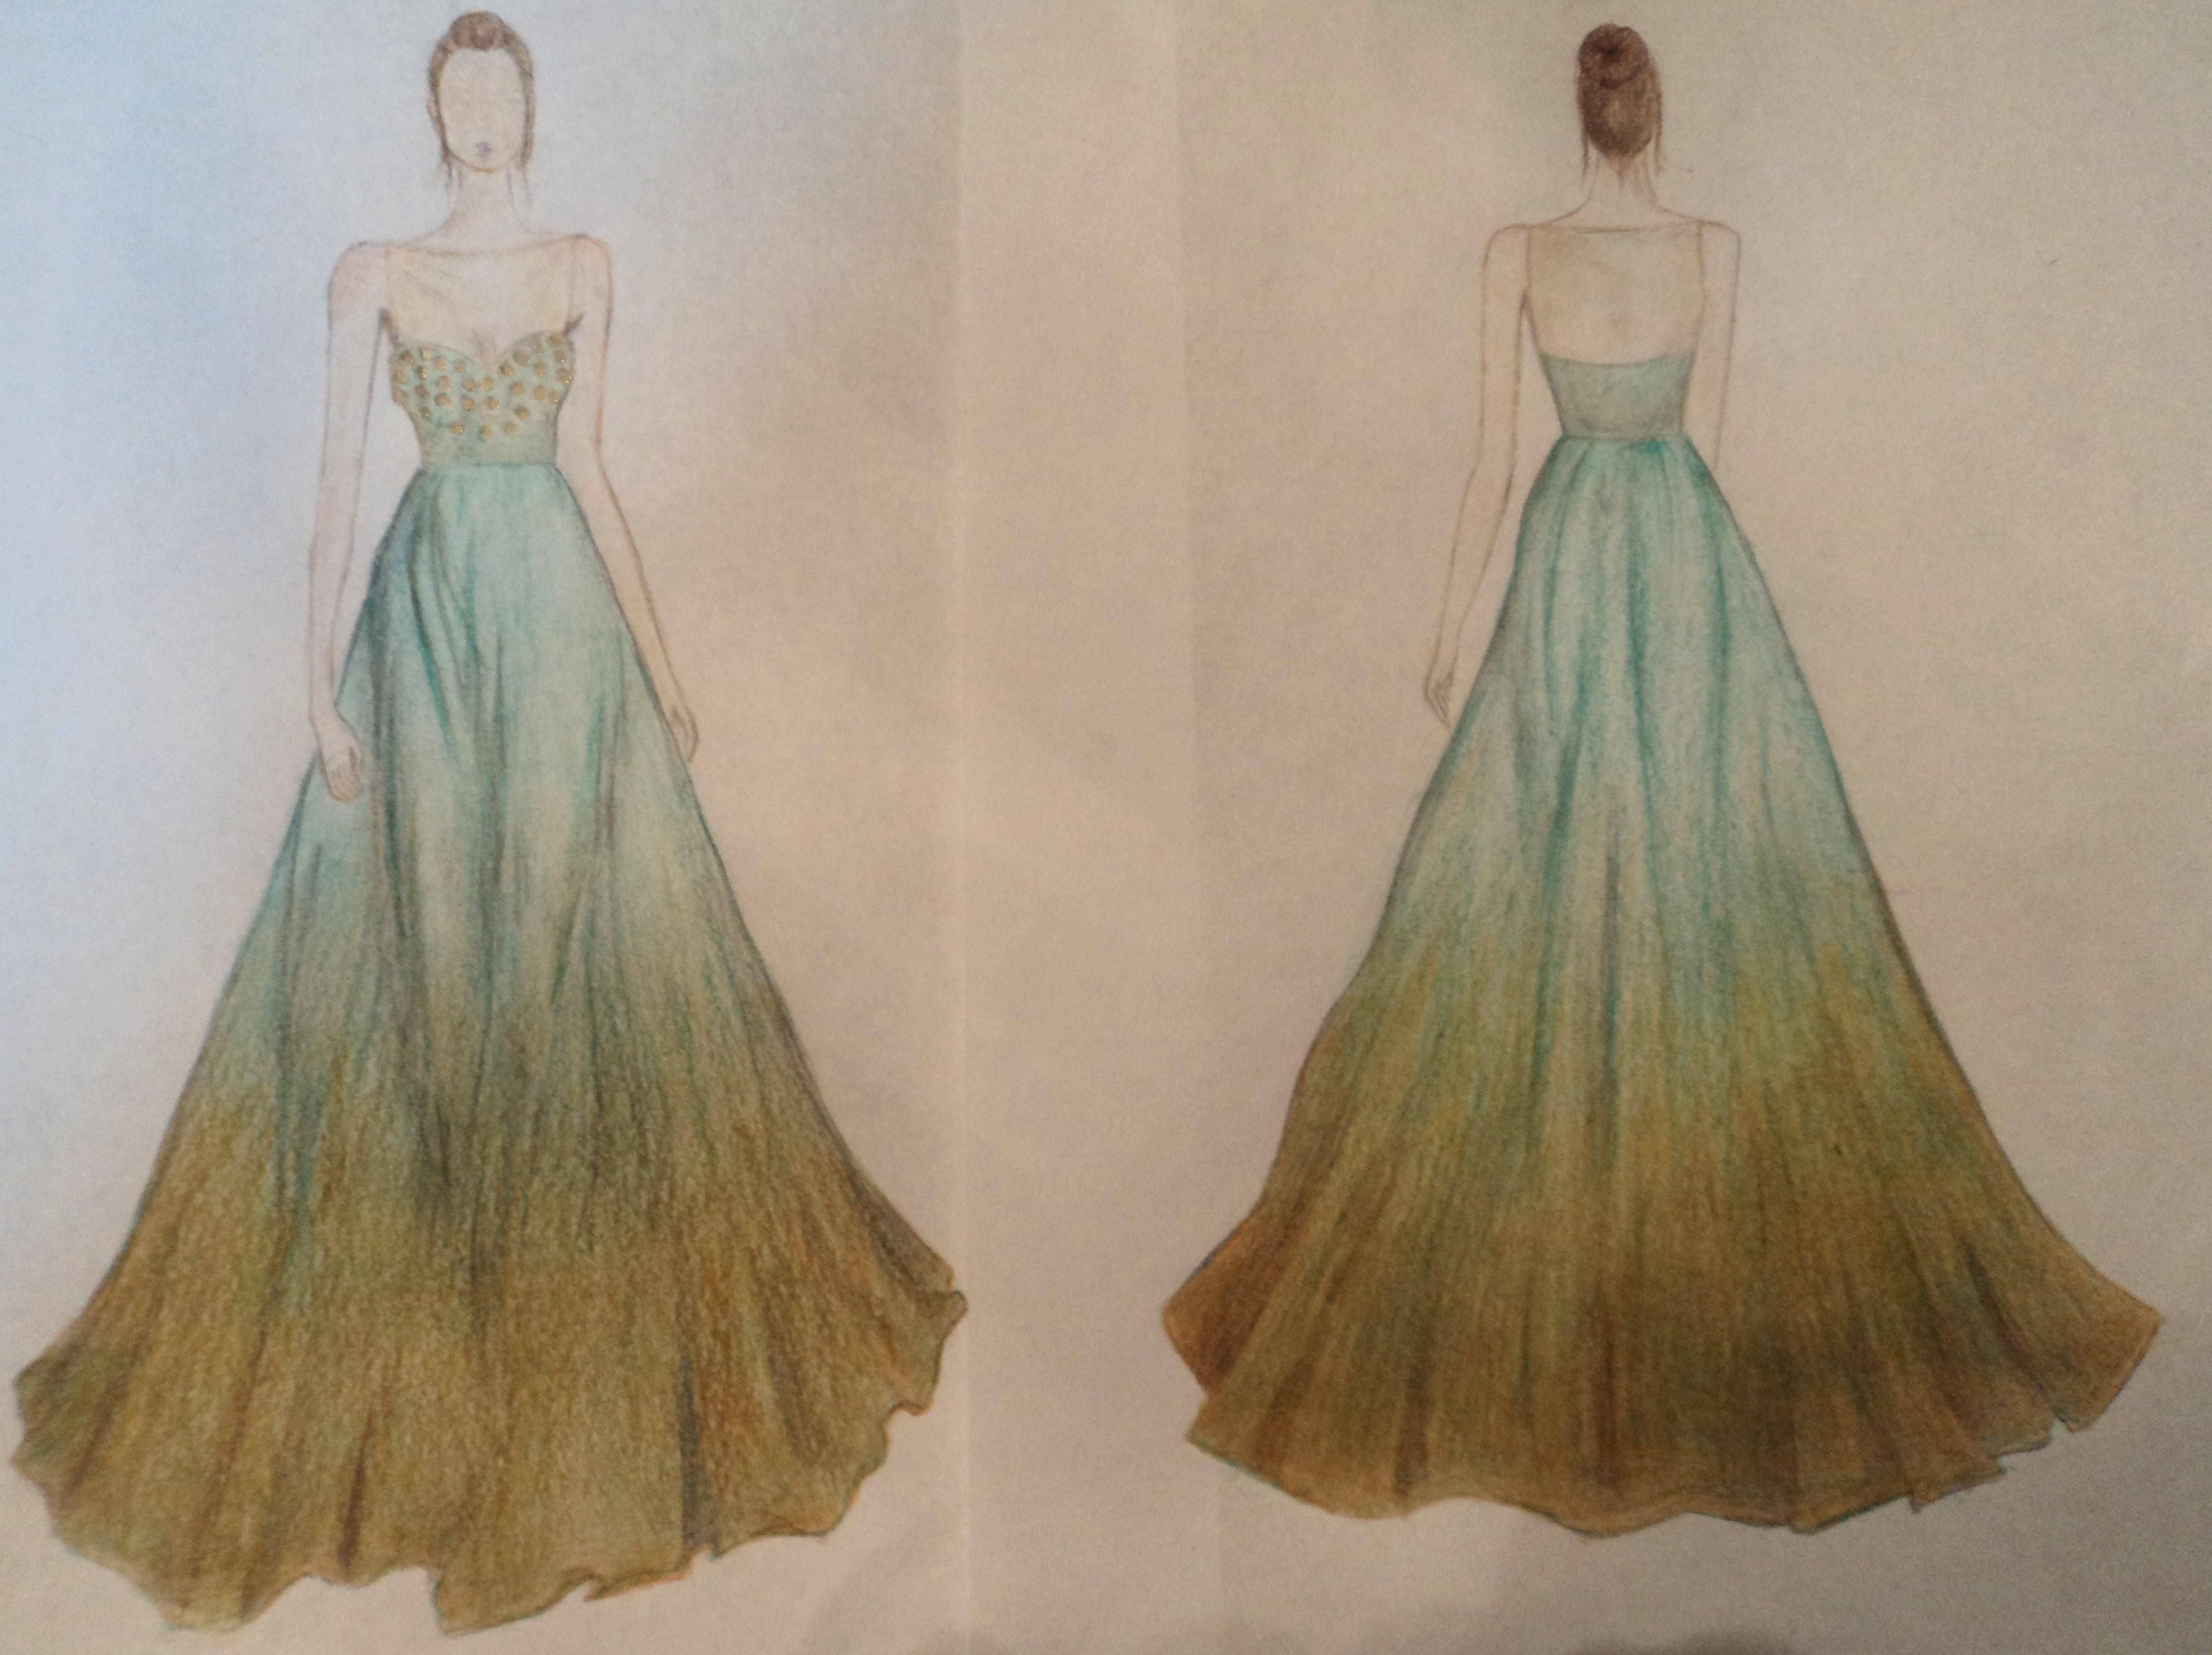 Prom Dress Designed By Sara Pourghead Inspired By The Statue